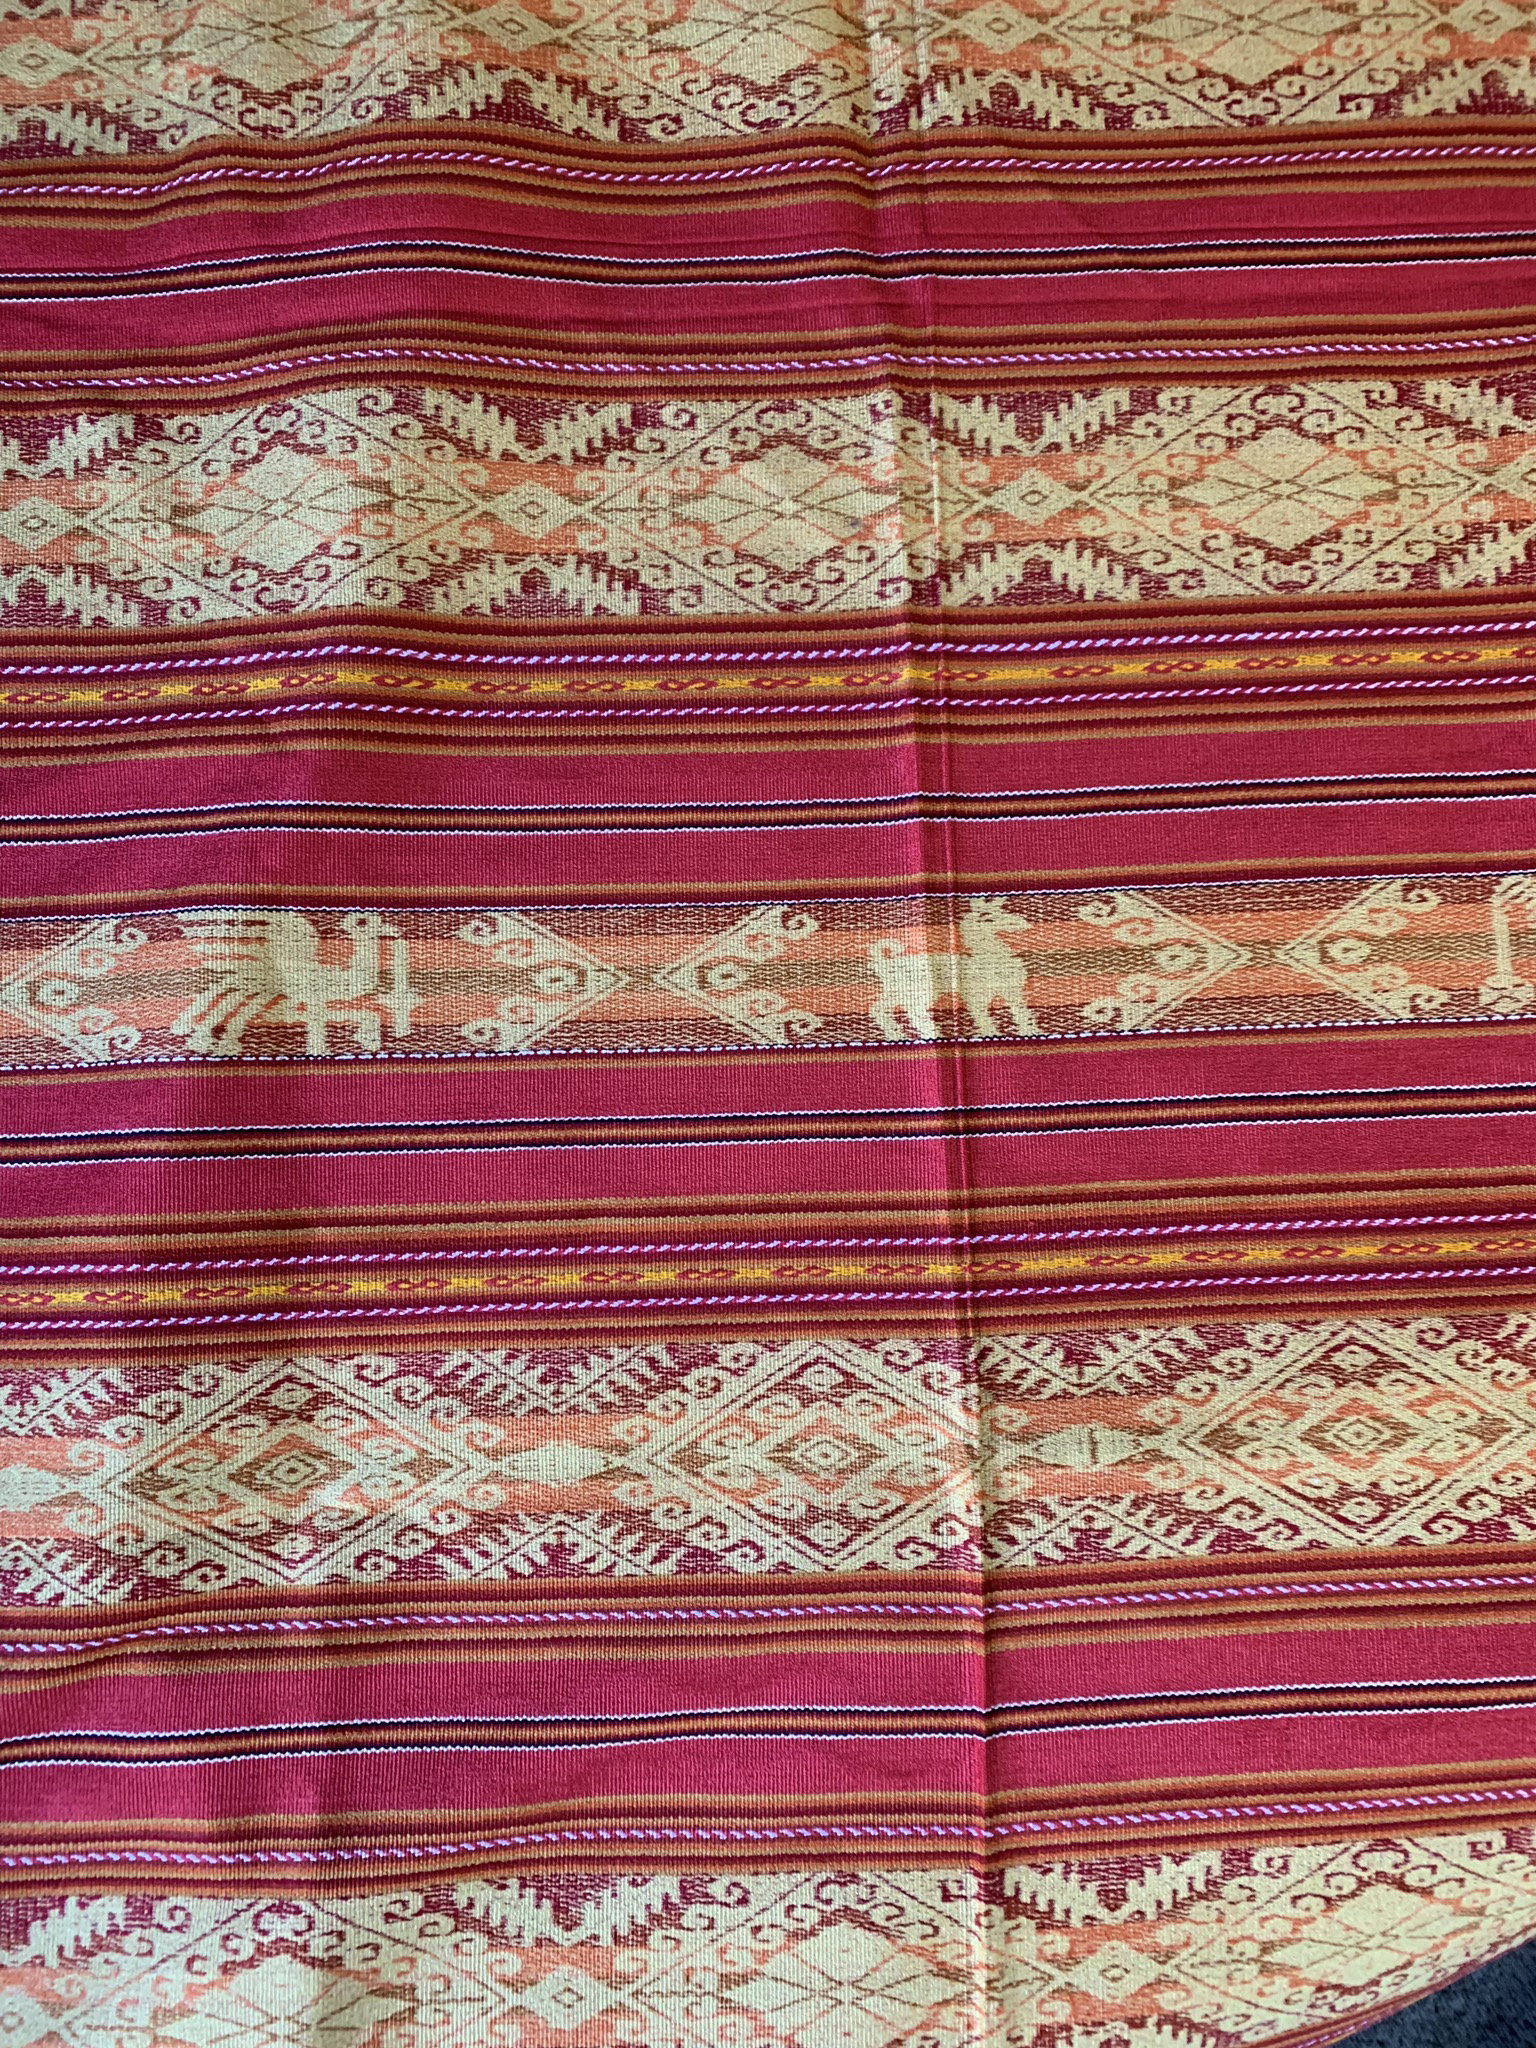 Small Red Tablecloth